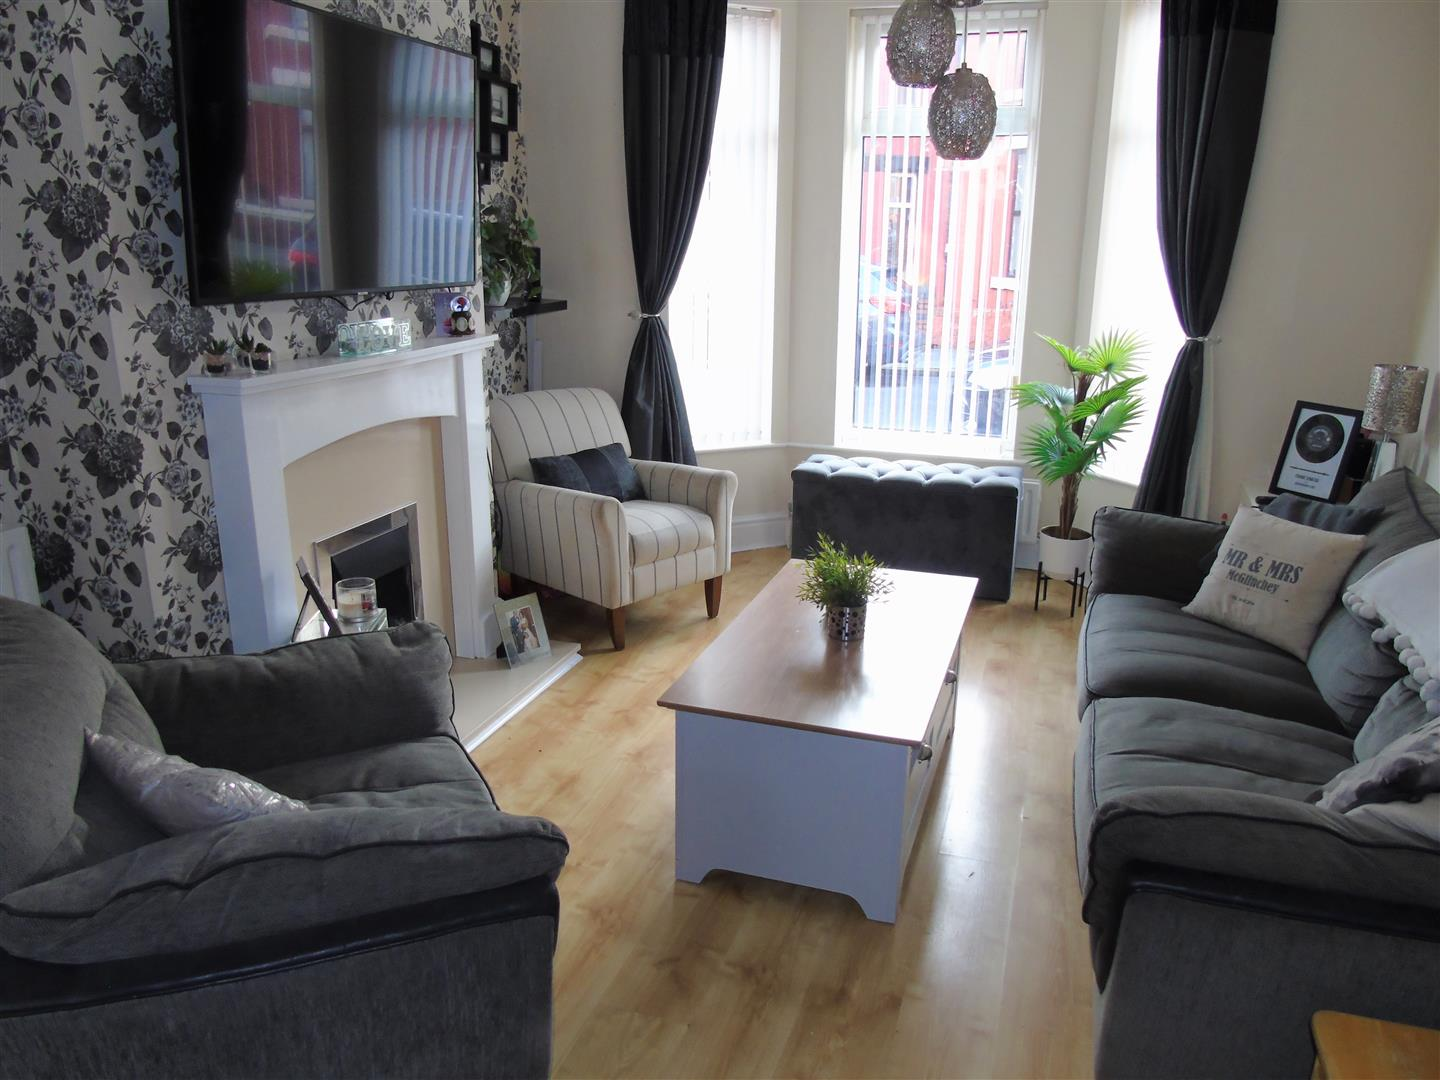 3 Bedrooms, House - Mid Terrace, Haddon Avenue, Liverpool